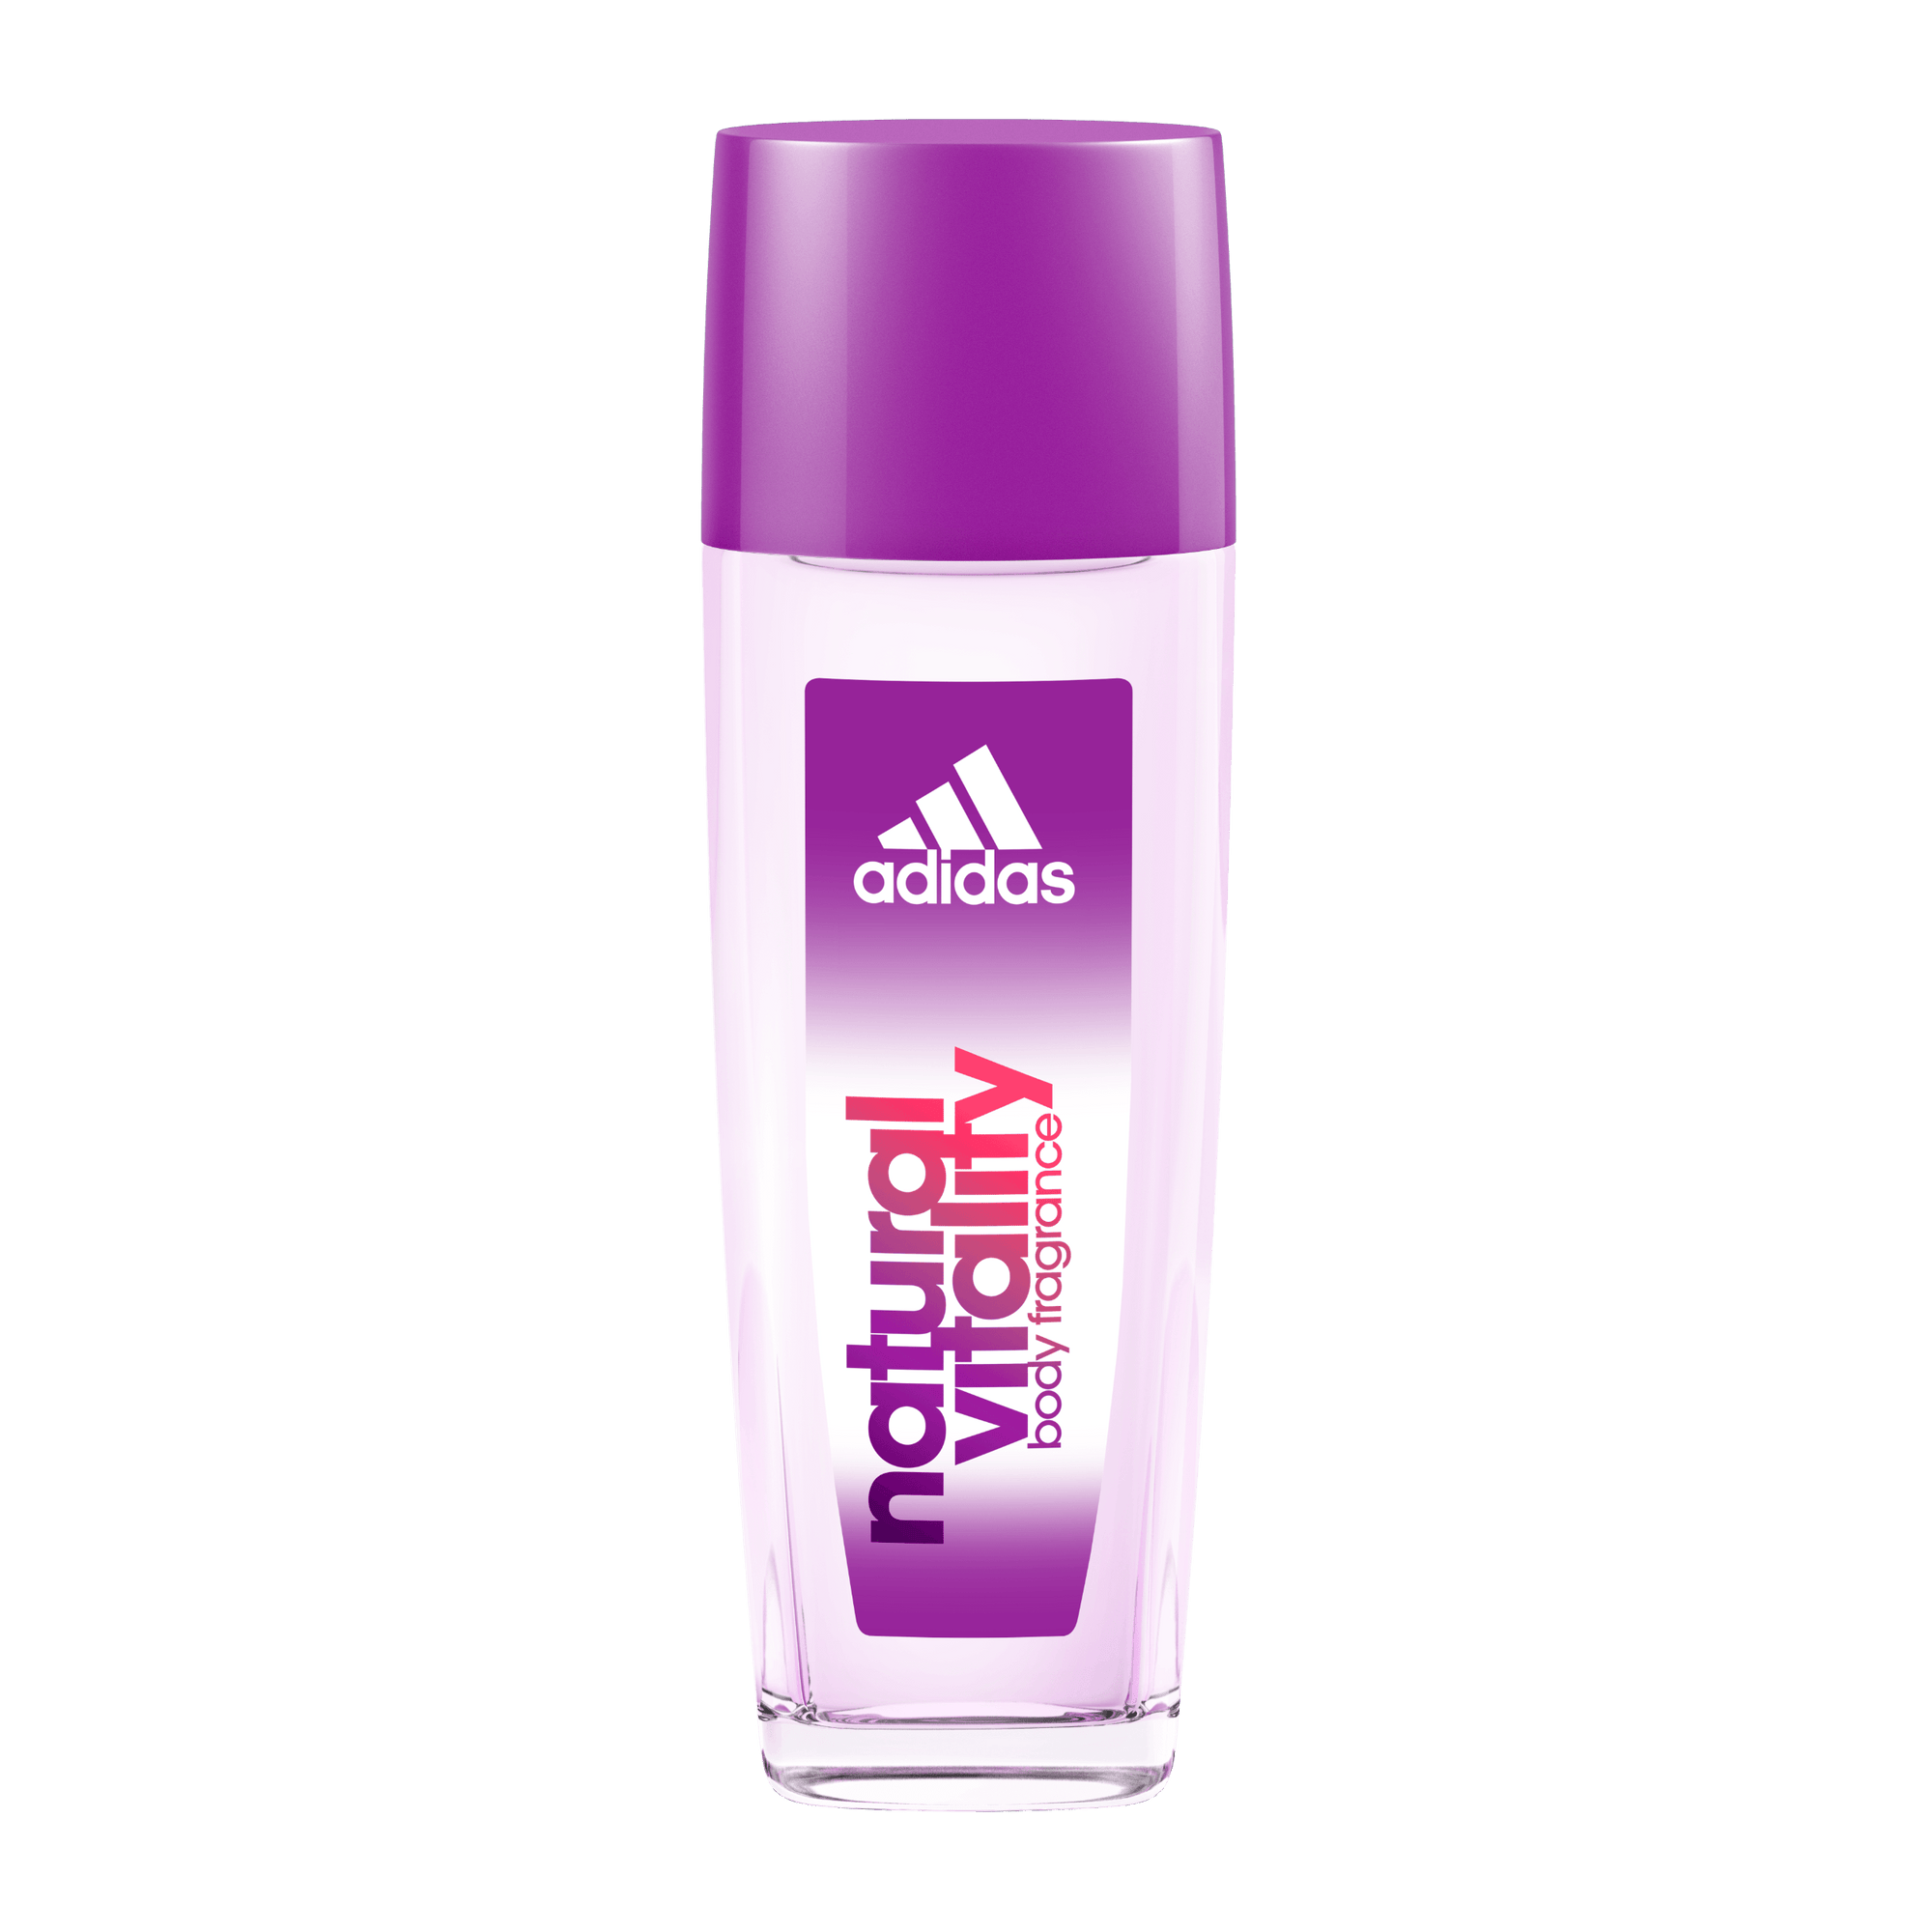 Adidas Natural Vitality Body Fragrance 75ml TESTER for Women